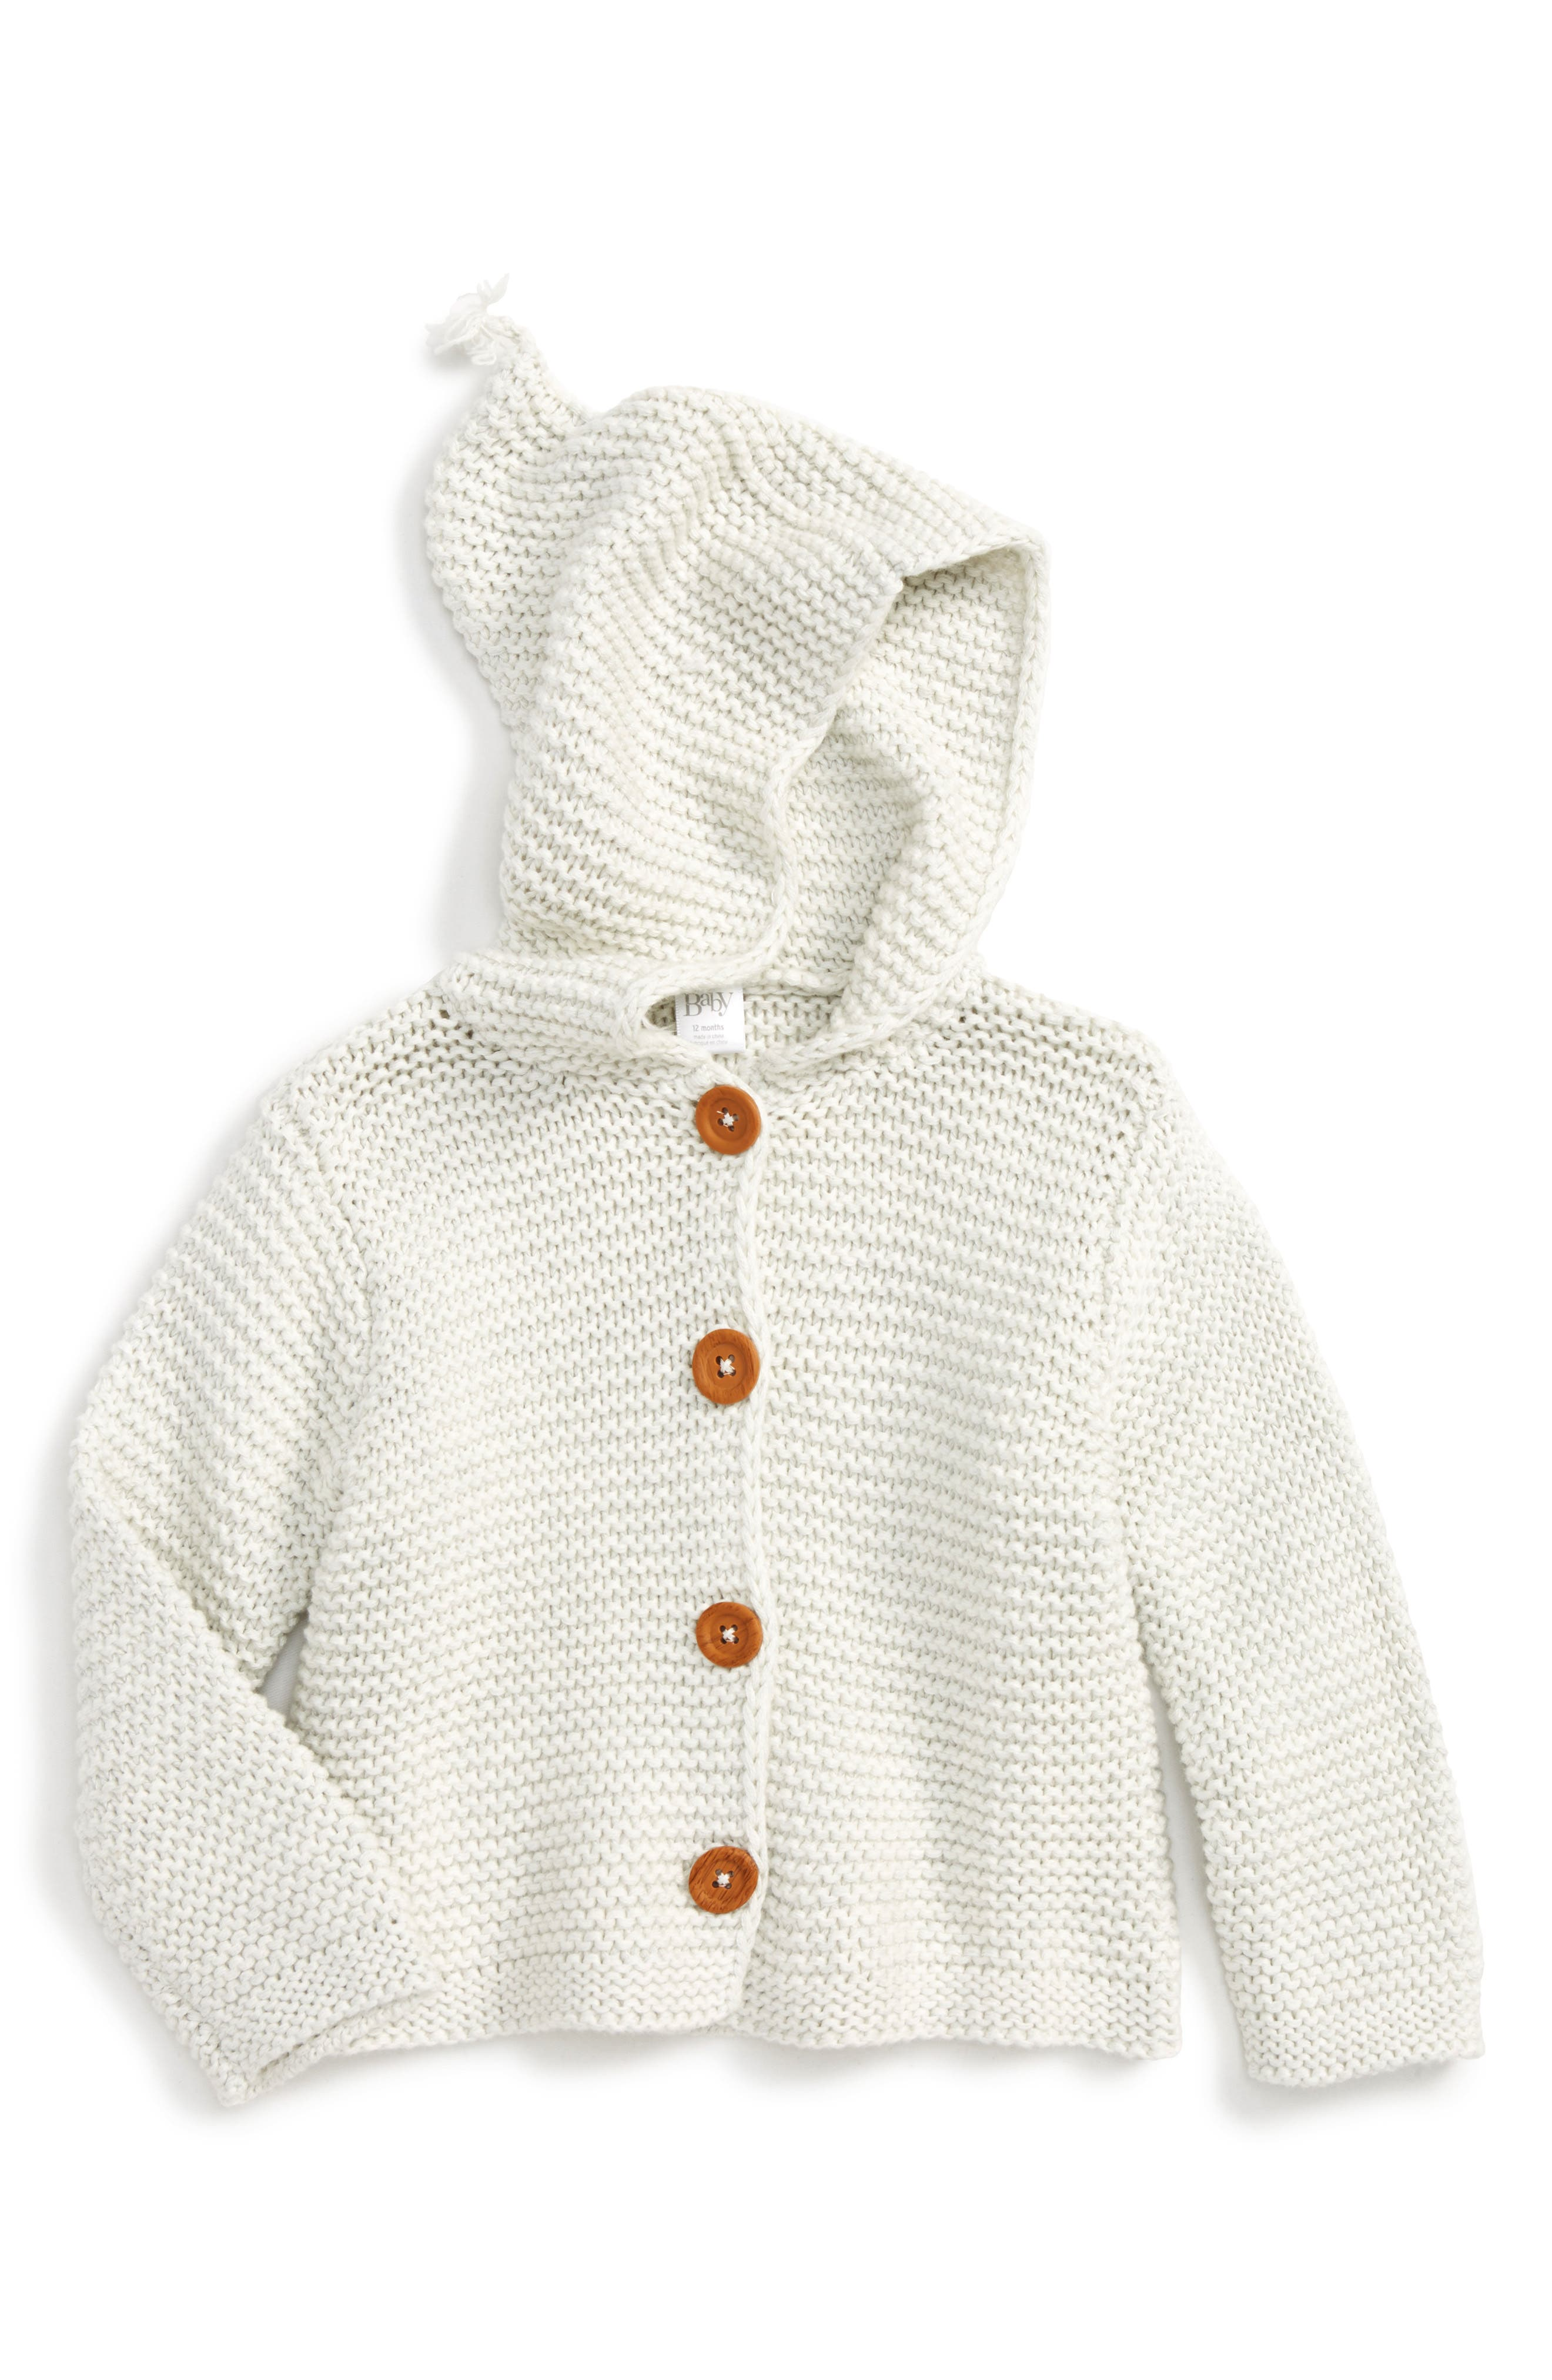 NORDSTROM BABY, Organic Cotton Hooded Cardigan, Main thumbnail 1, color, IVORY EGRET HEATHER